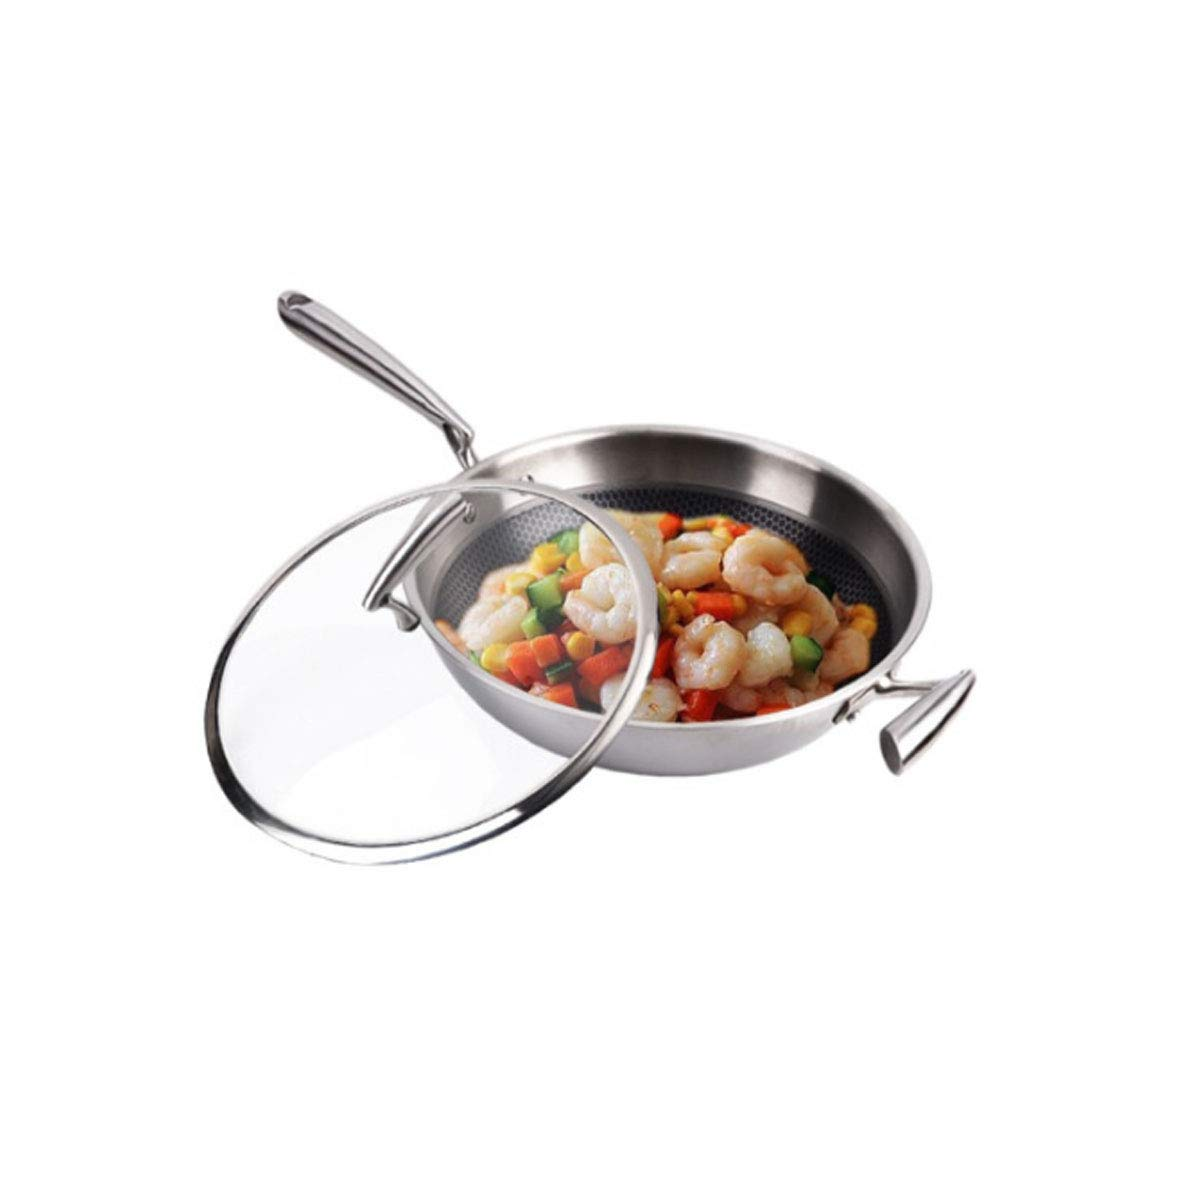 8haowenju Pan,304 Stainless Steel Wok, Gas Stove and Induction Cooker Can Be Used, Flat Bottom 12.8 Inch Wok, Silver White (Stainless Steel Cover) Multi-Purpose Pot (Color : Silver)